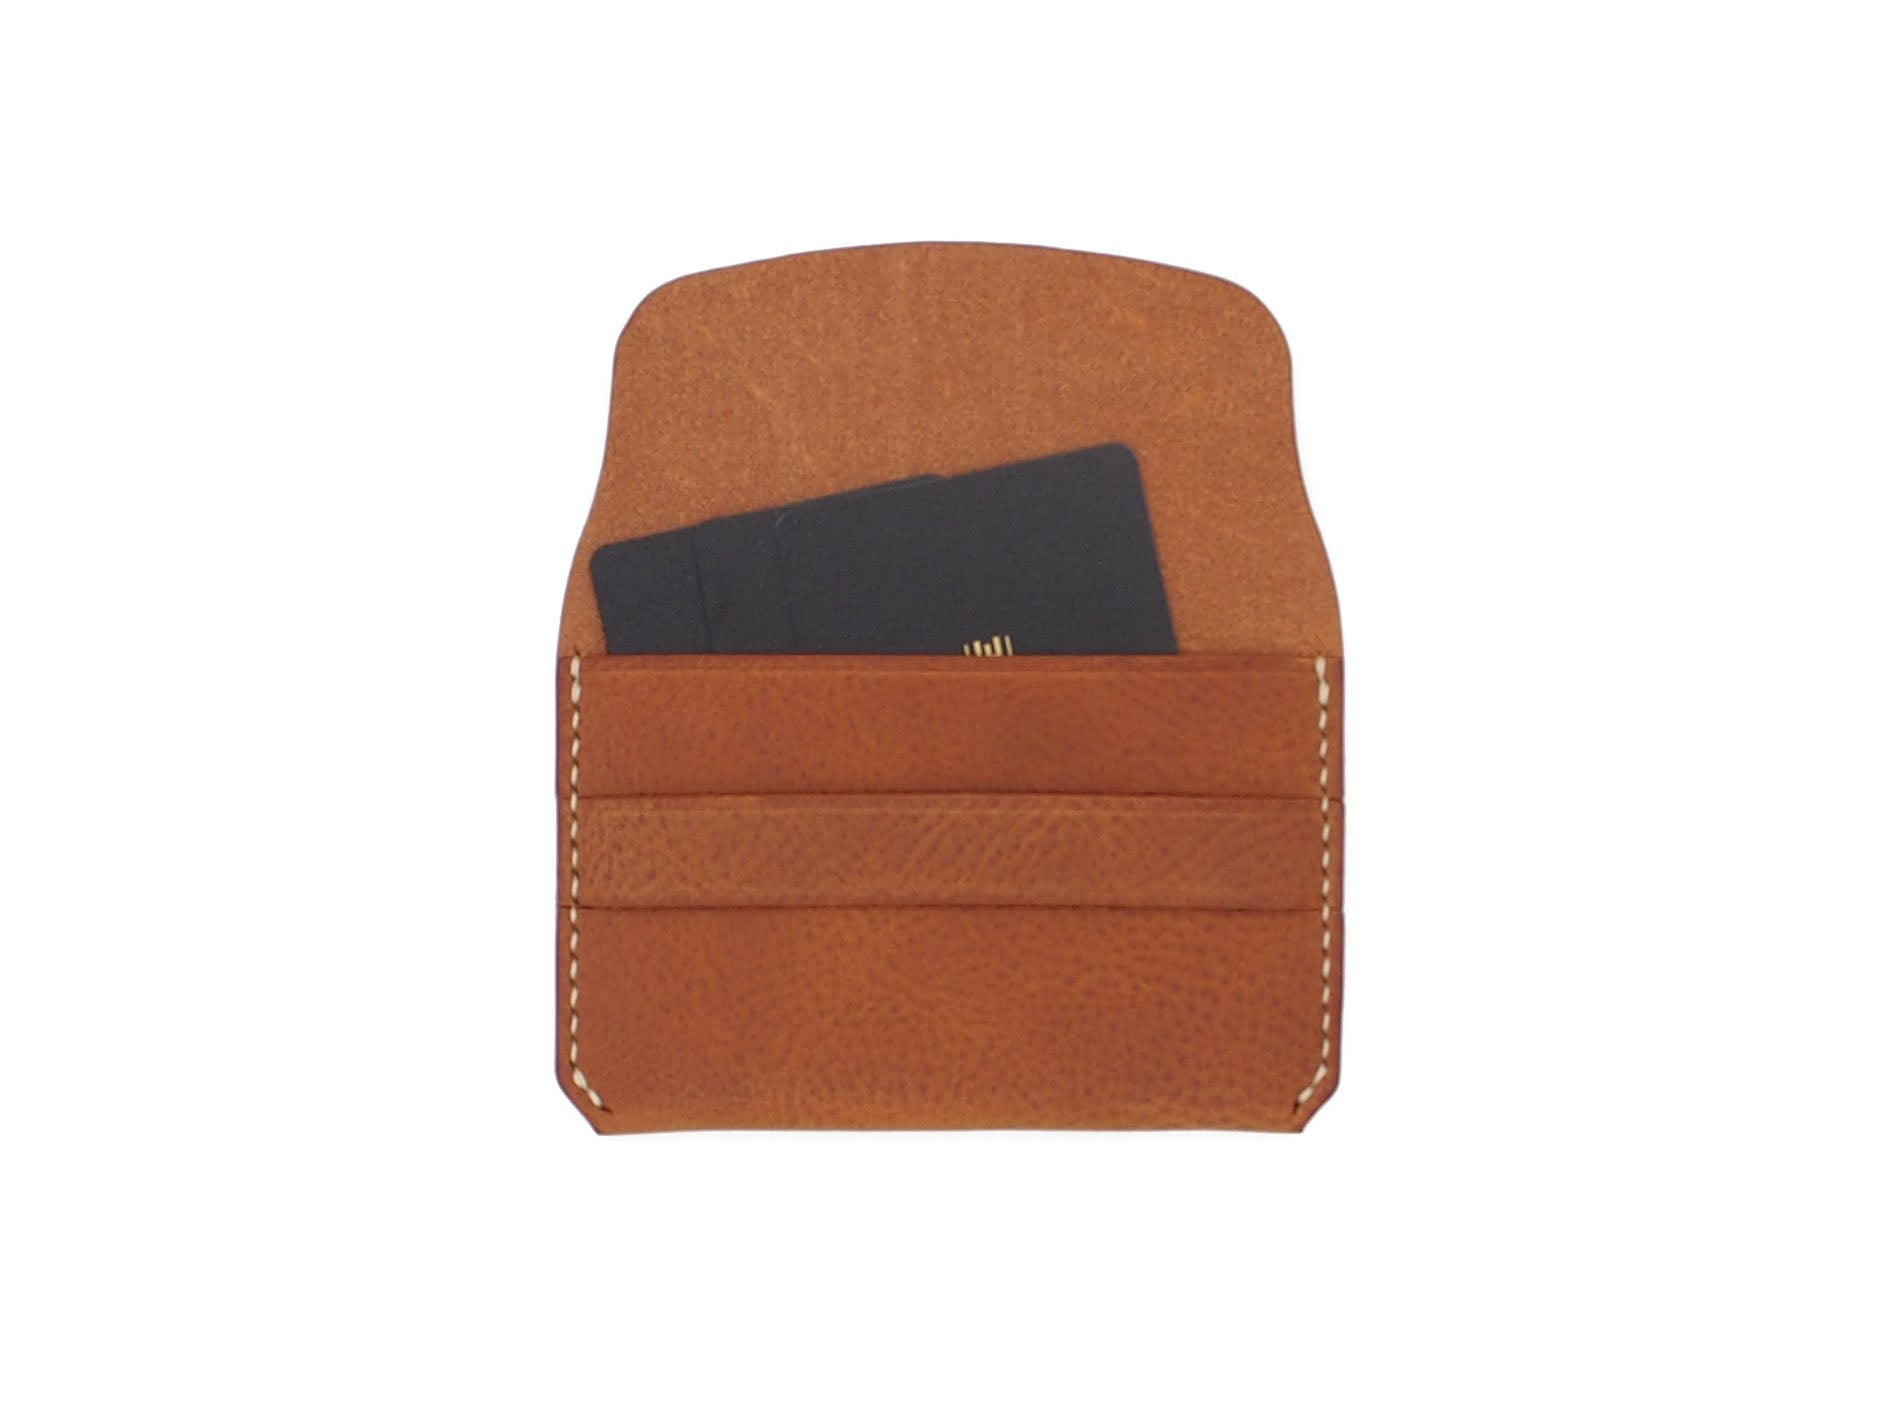 Bodega- Envelope Wallet In Arnia Rustico